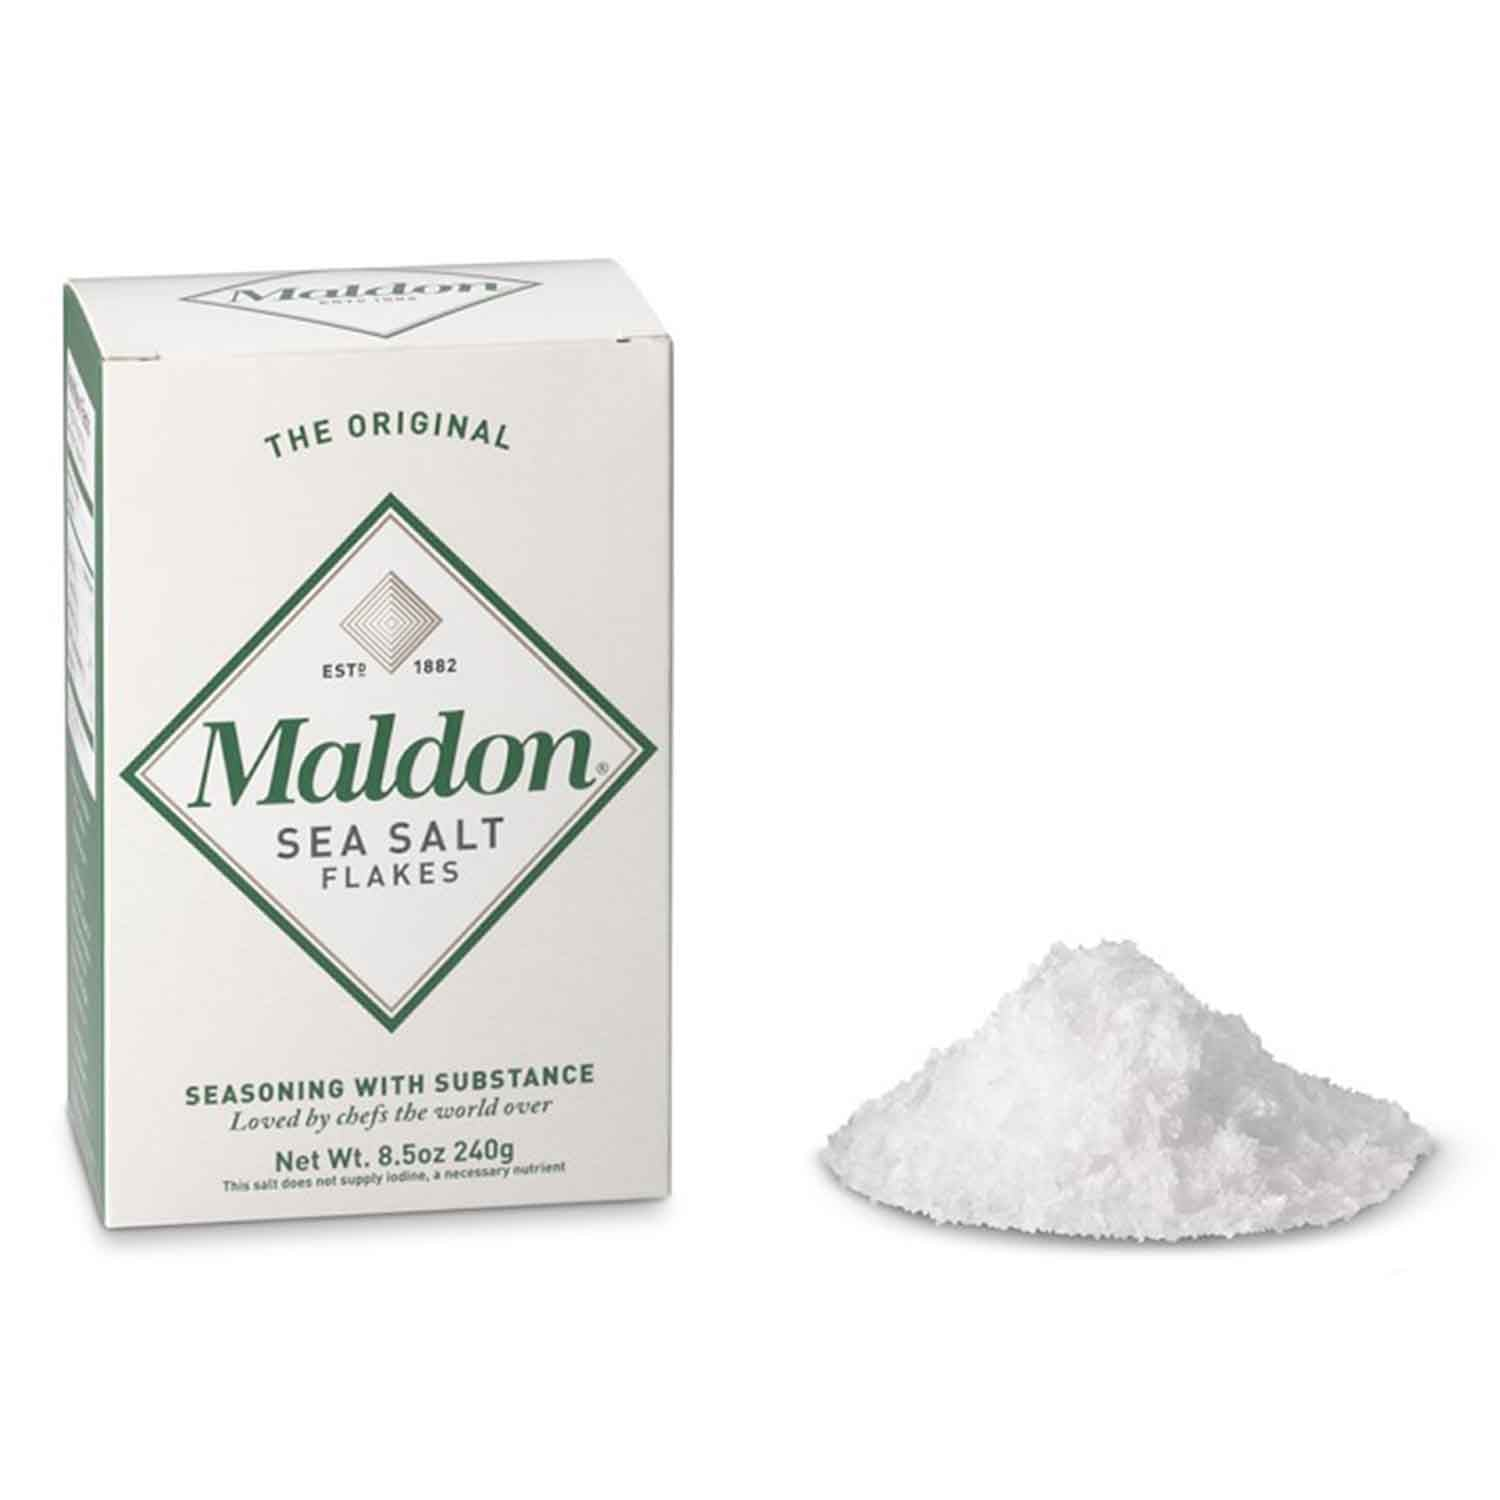 8.5oz box of Maldon Sea Salt Flakes next to a small pile of salt flakes